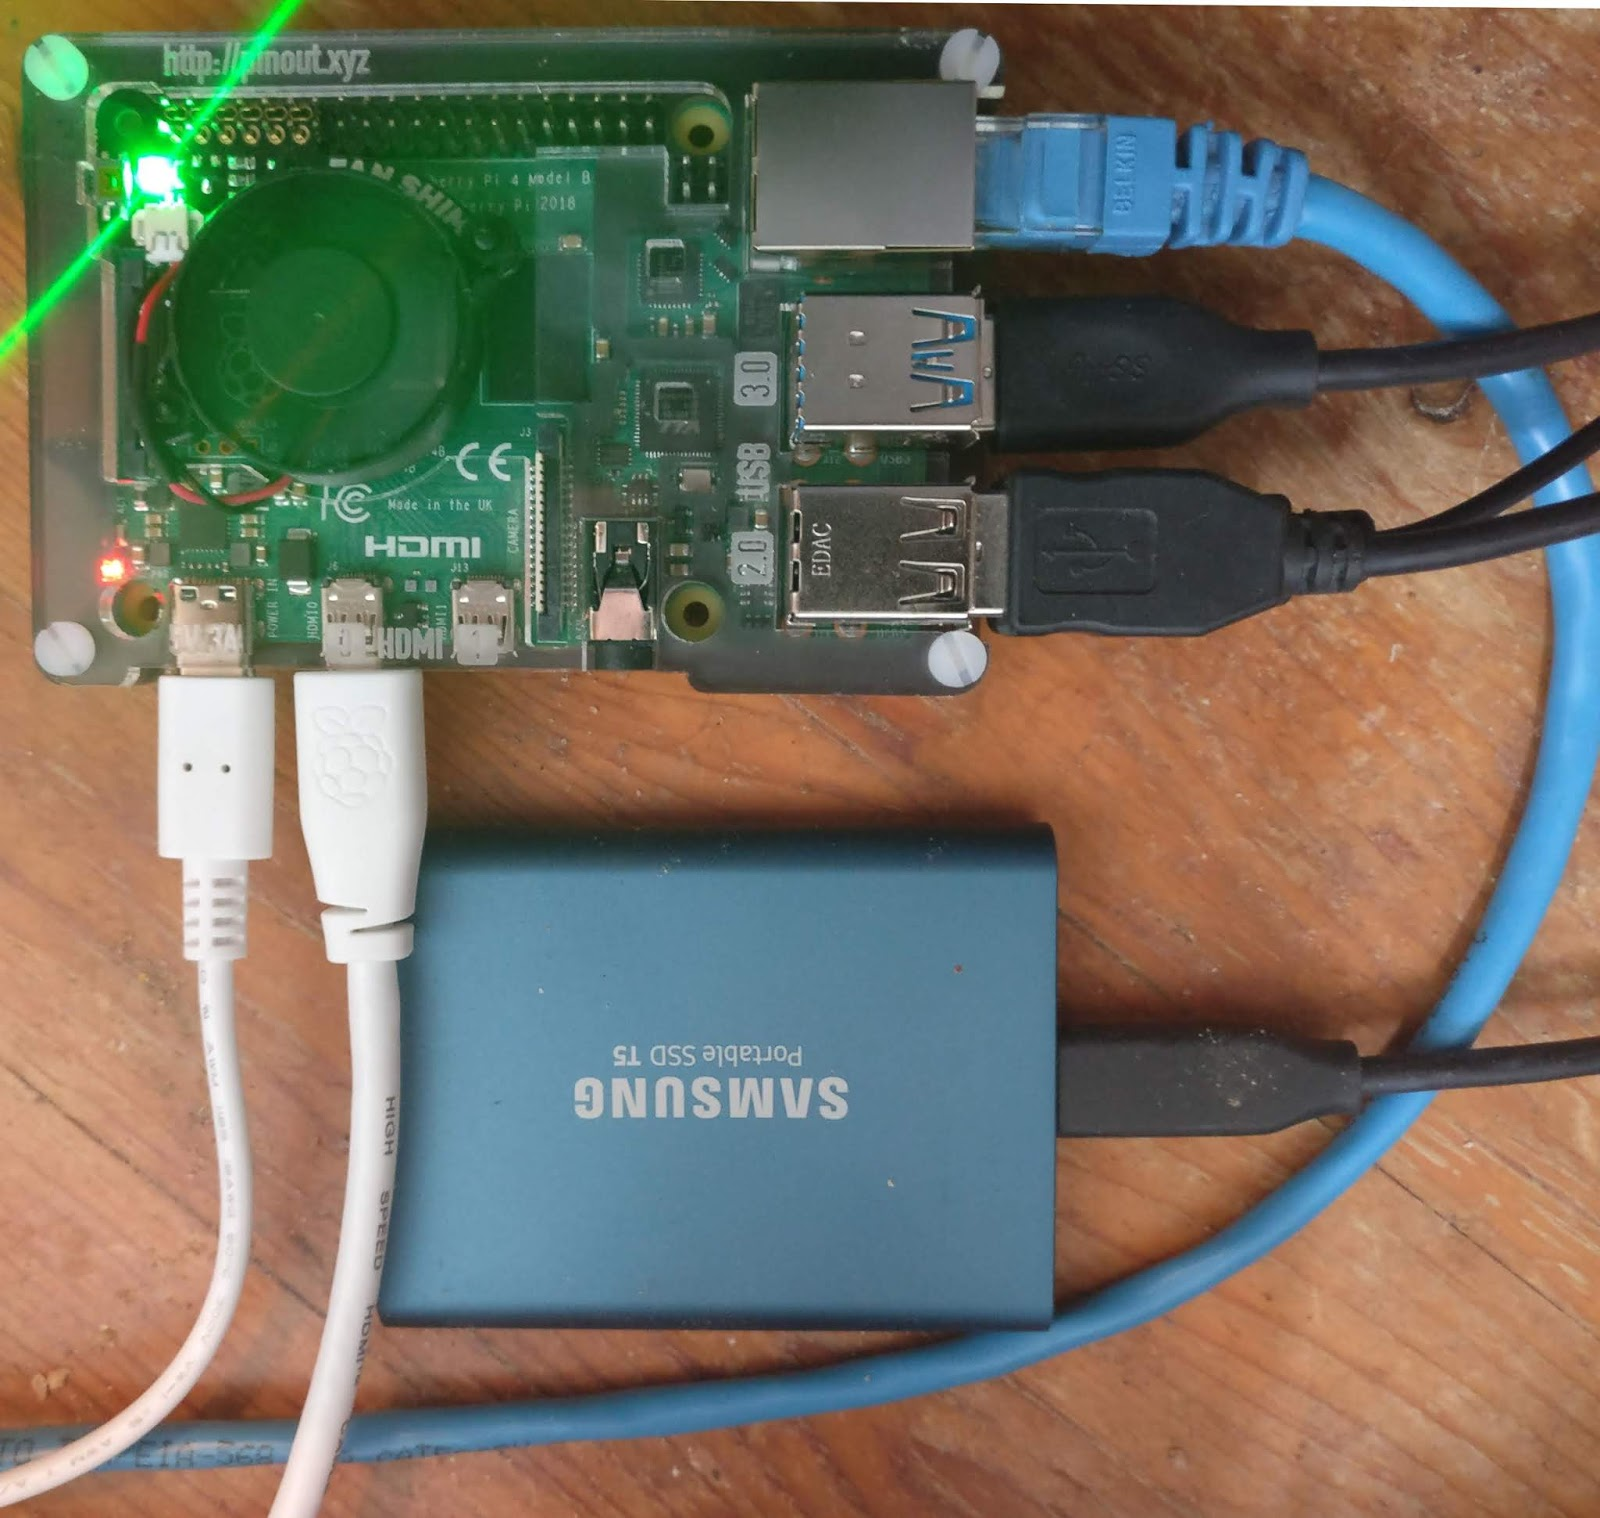 RAREblog: Training ANNs on the Raspberry Pi 4 and Jetson Nano